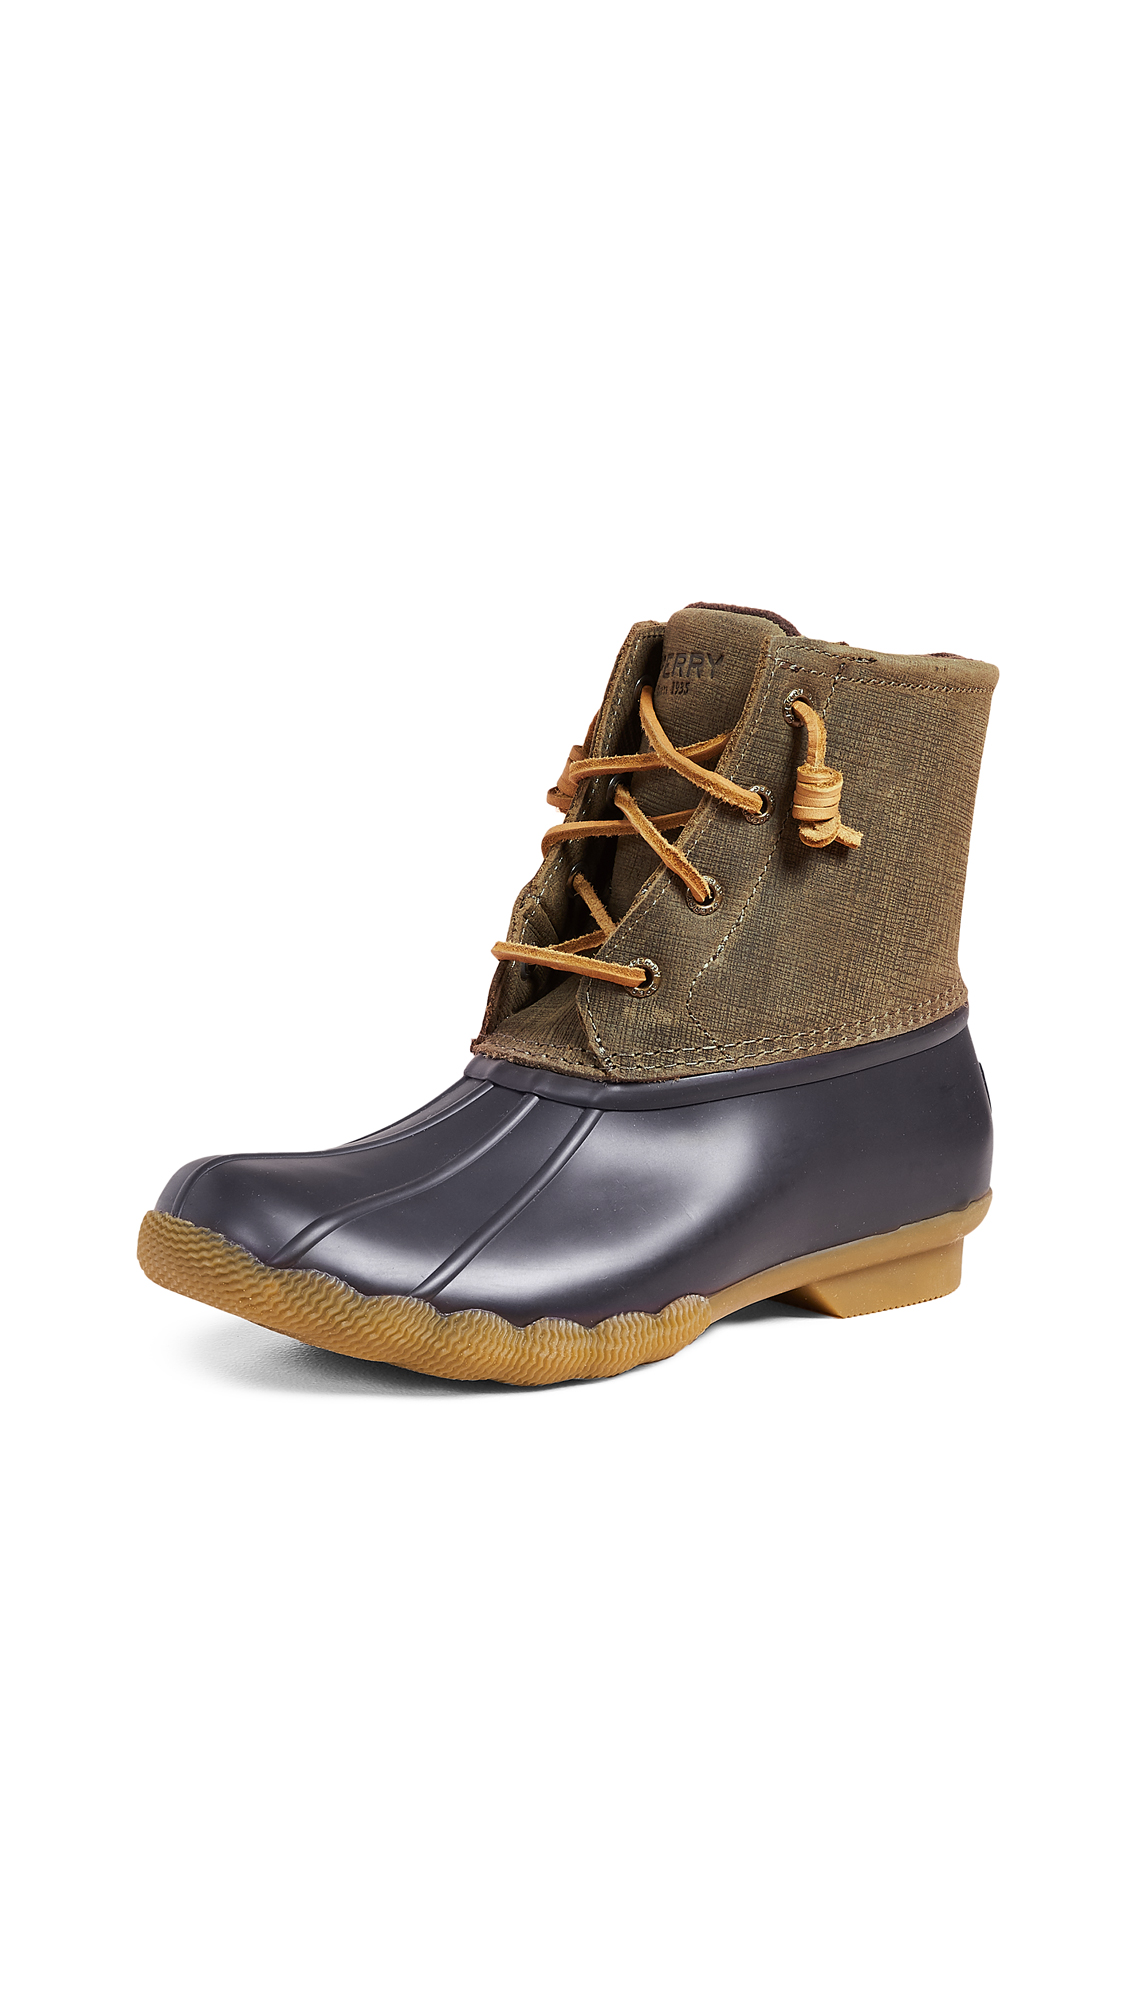 Sperry Saltwater Boots - Olive/Brown